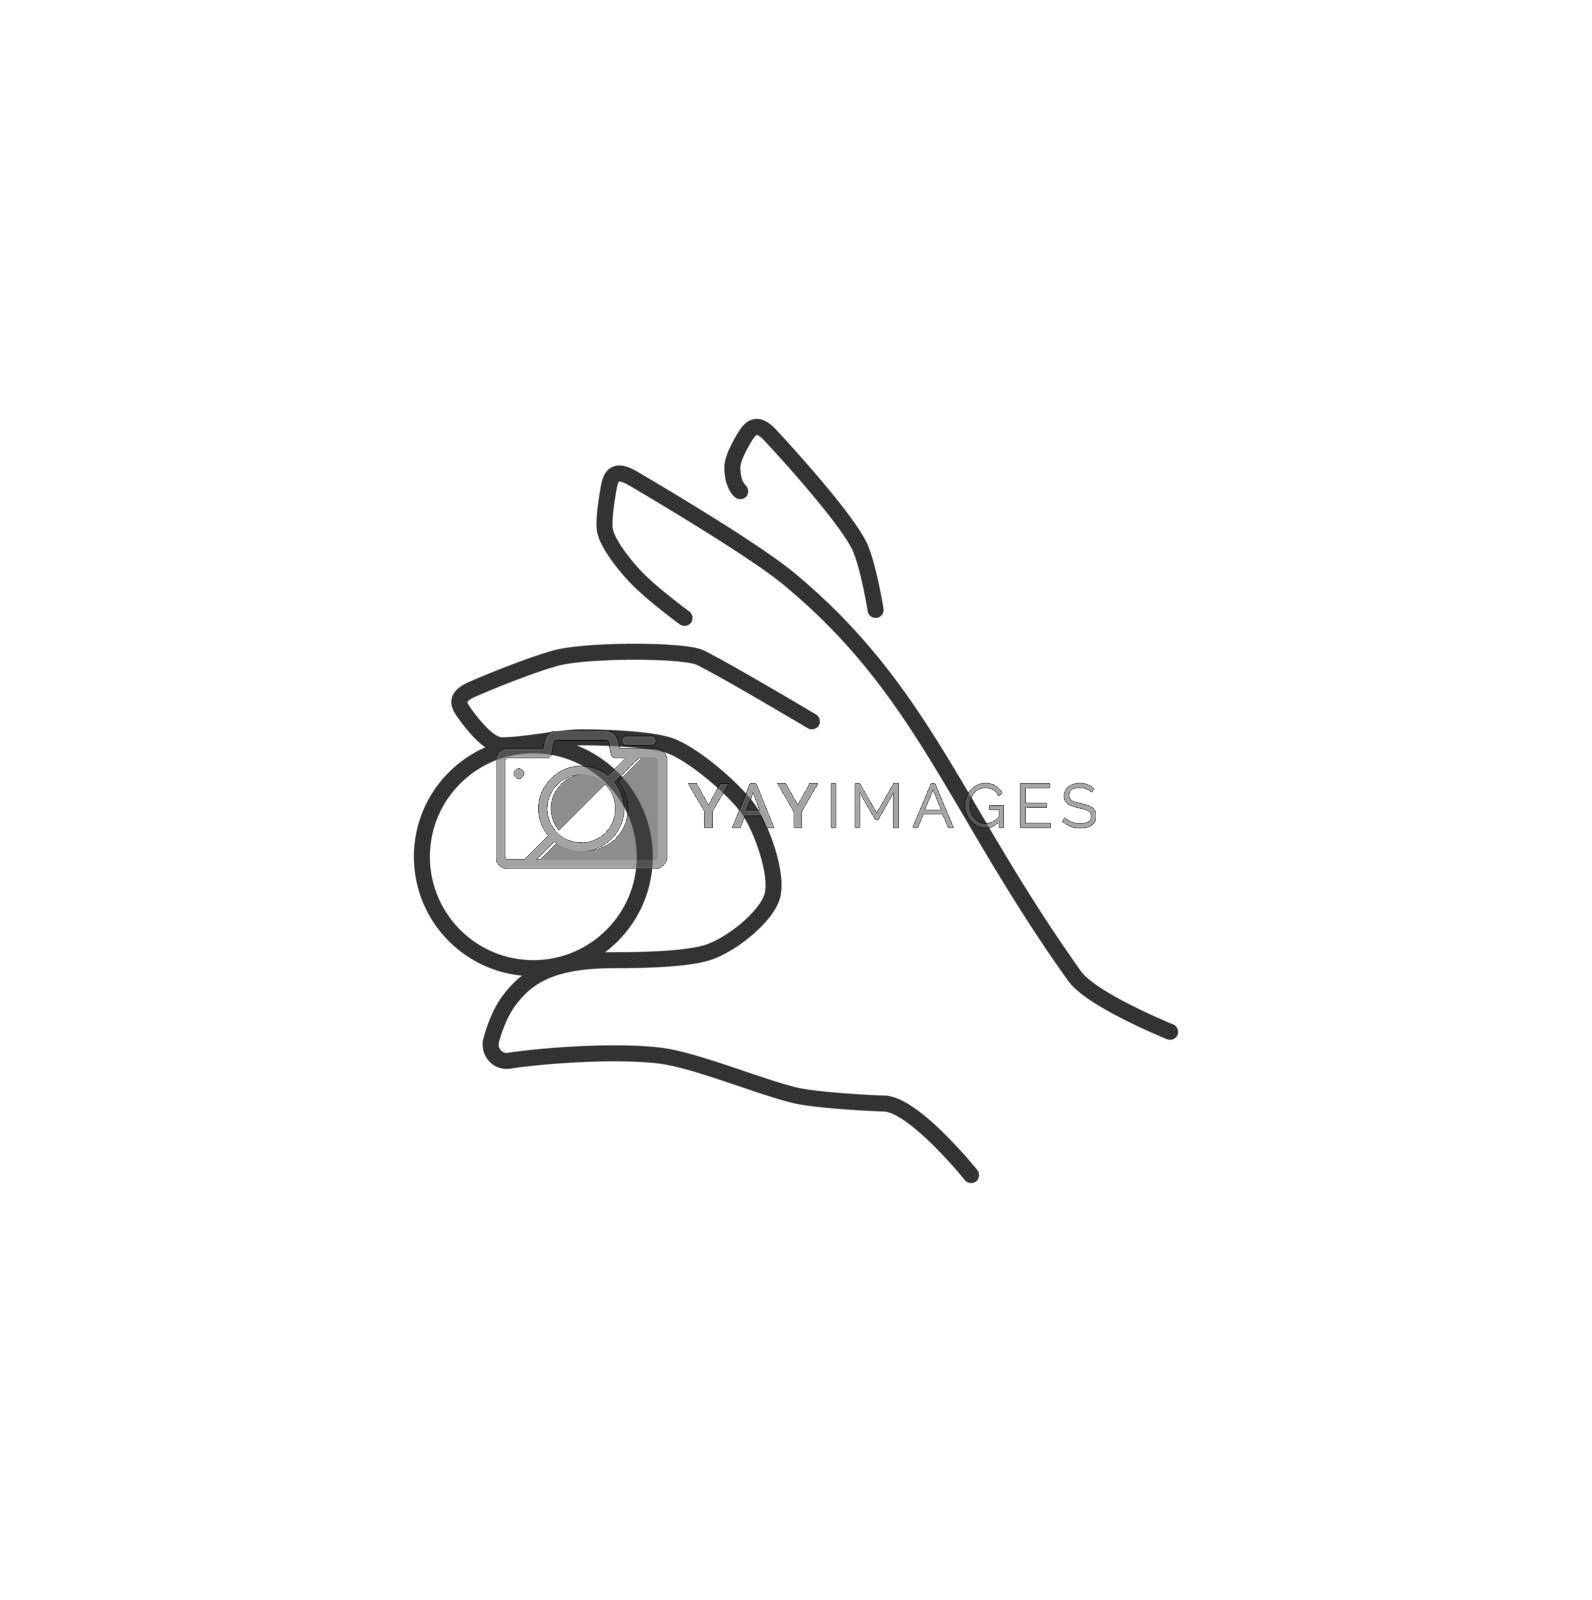 Hand Holding a Coin Related Vector Line Icon. Sign Isolated on the White Background. Editable Stroke EPS file. Vector illustration.